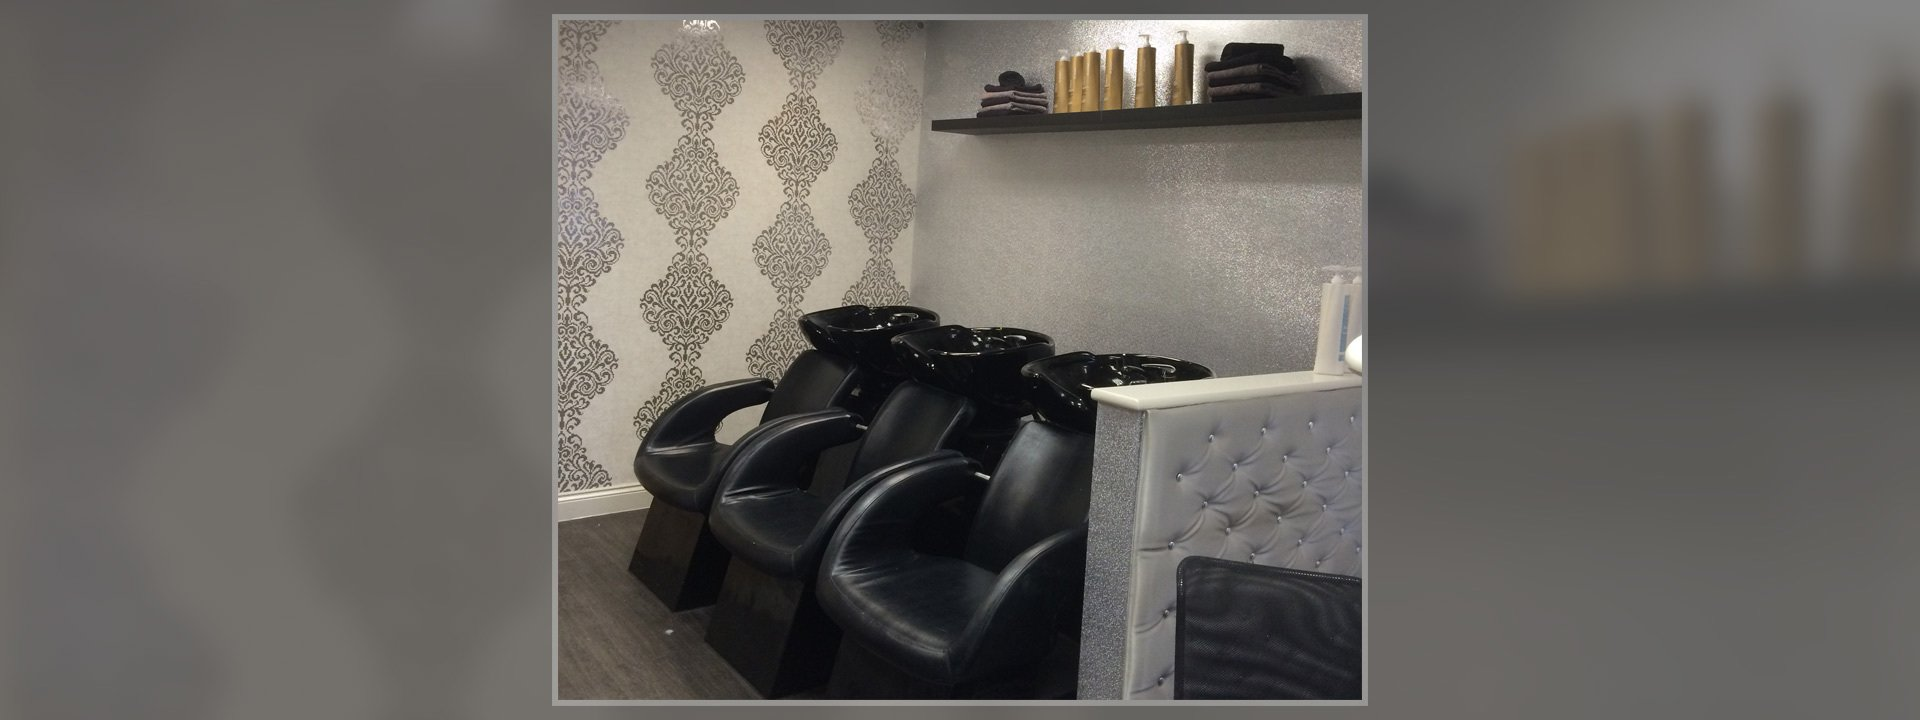 Black washbasins and black leather chairs at the hair washing station